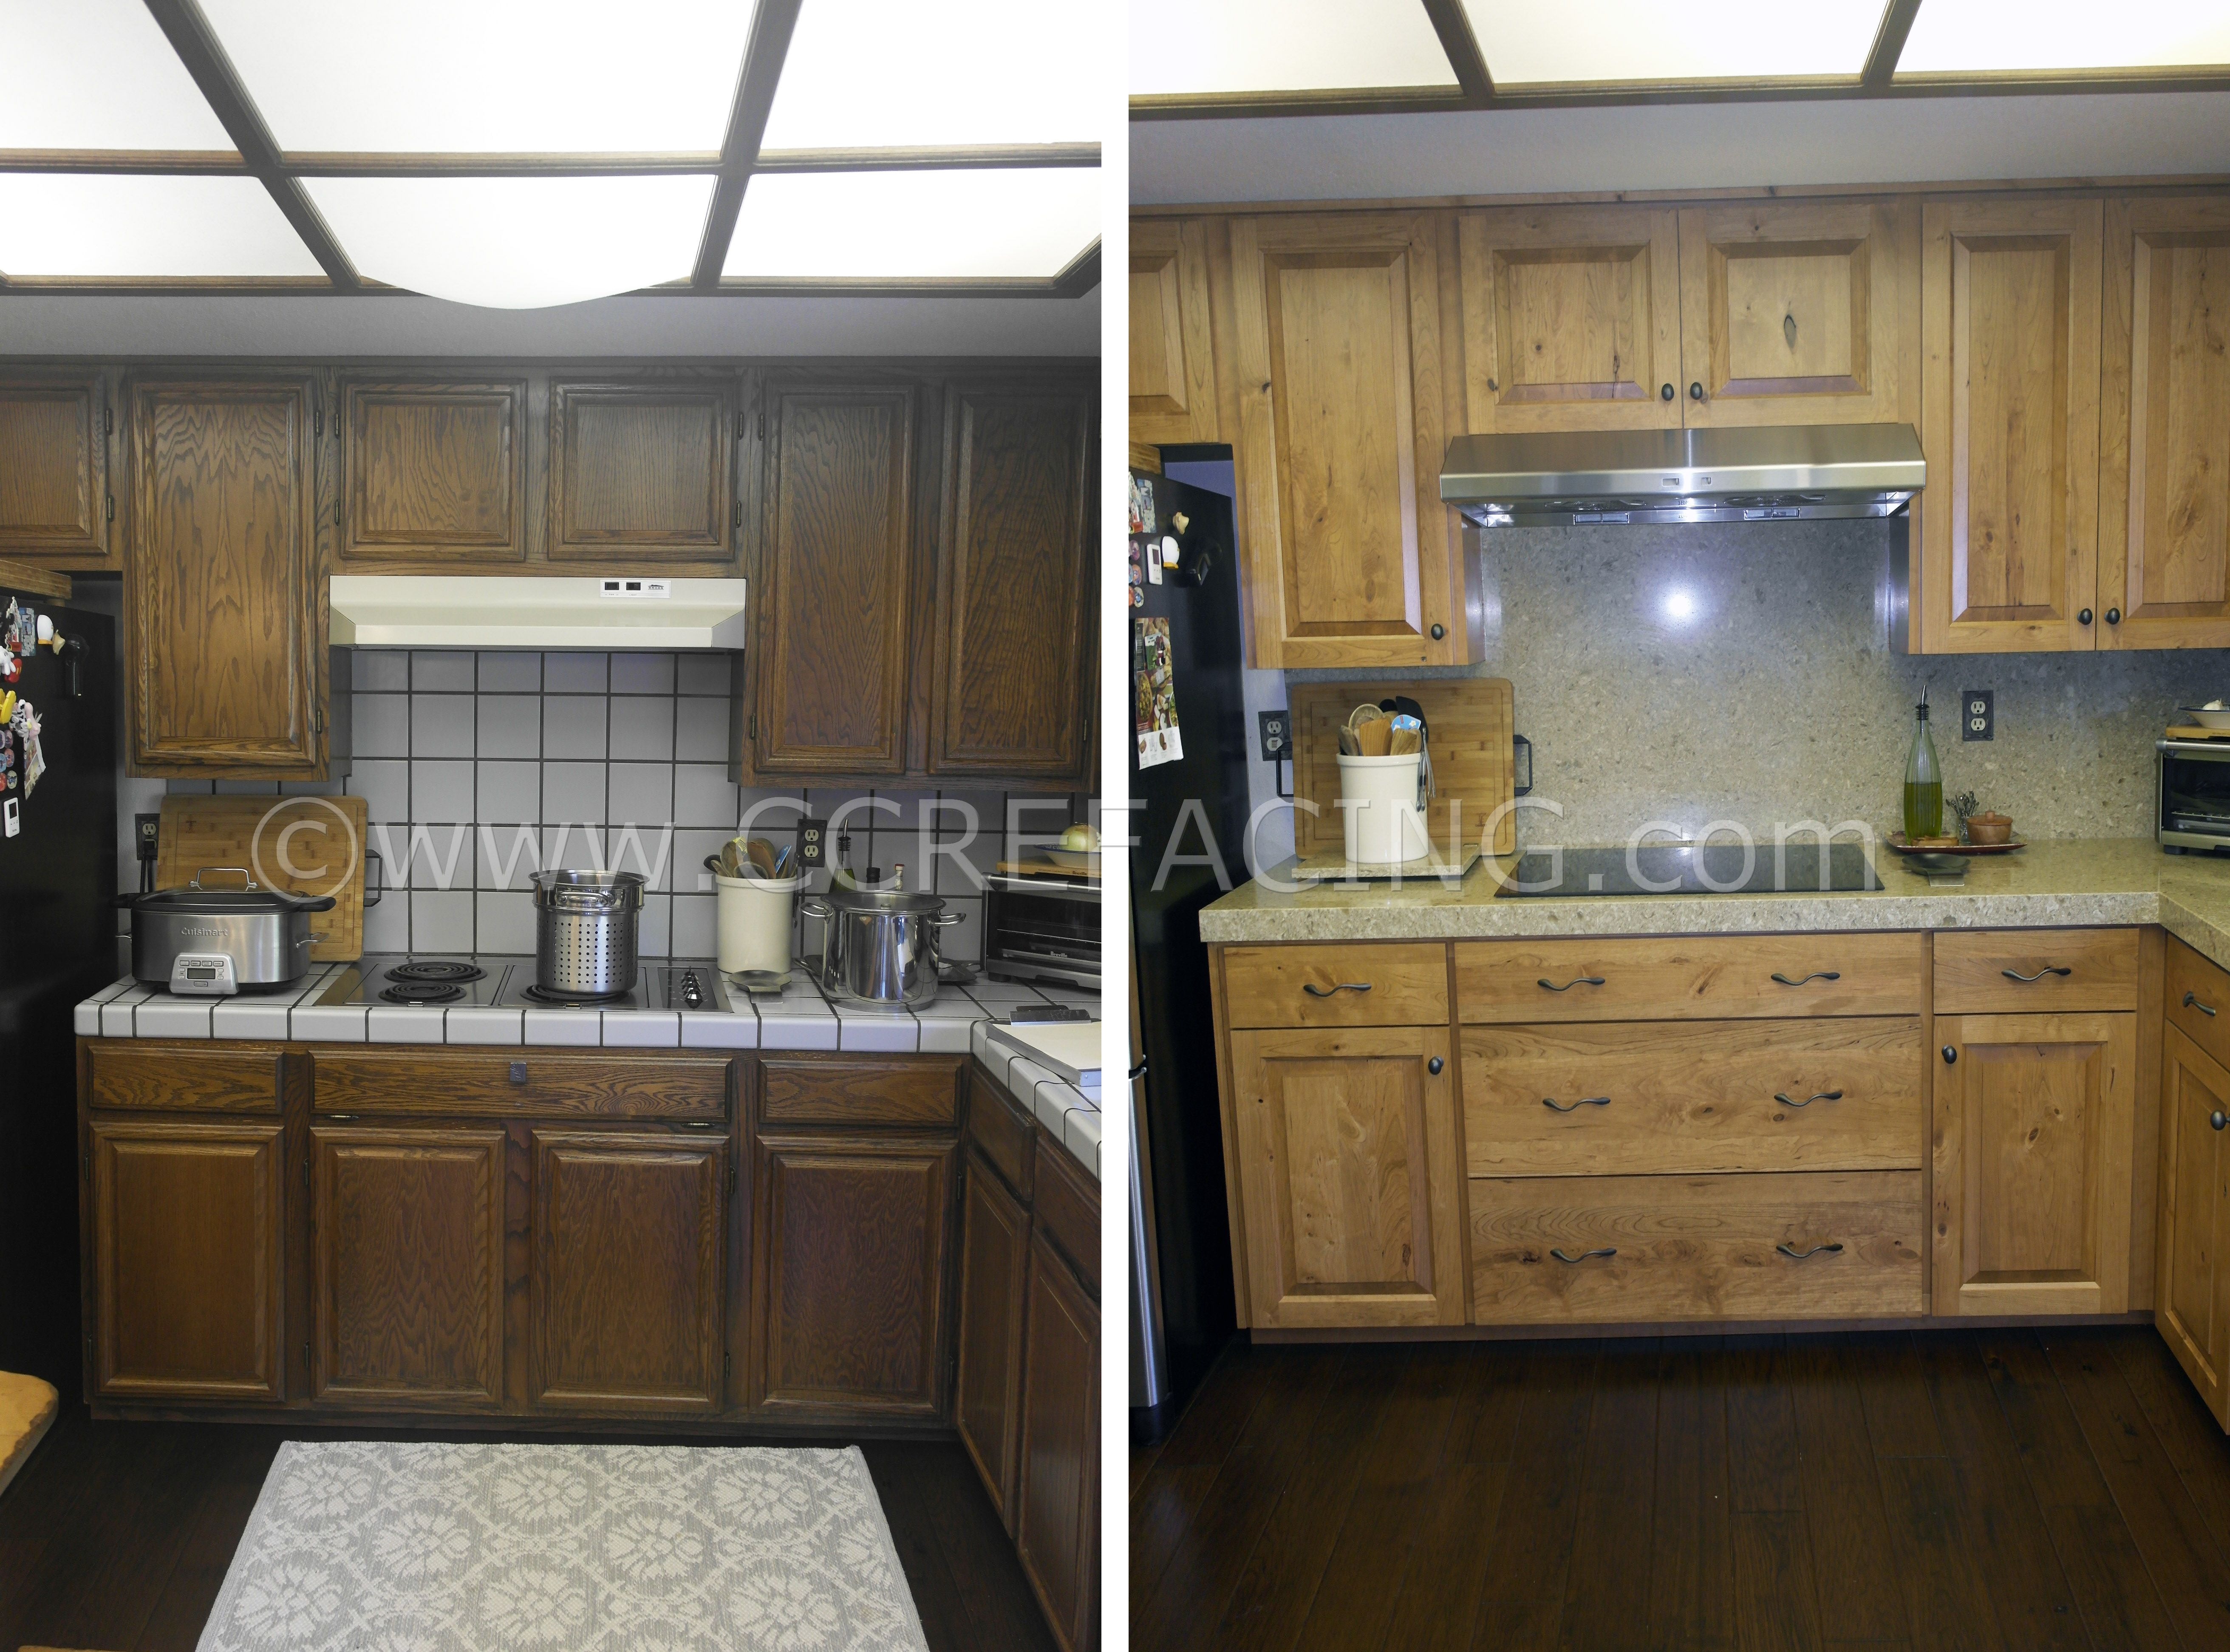 Cabinet Refacing San Mateo With Rustic Cherry Doors Cabinet Refacing Custom Cabinets Cabinet